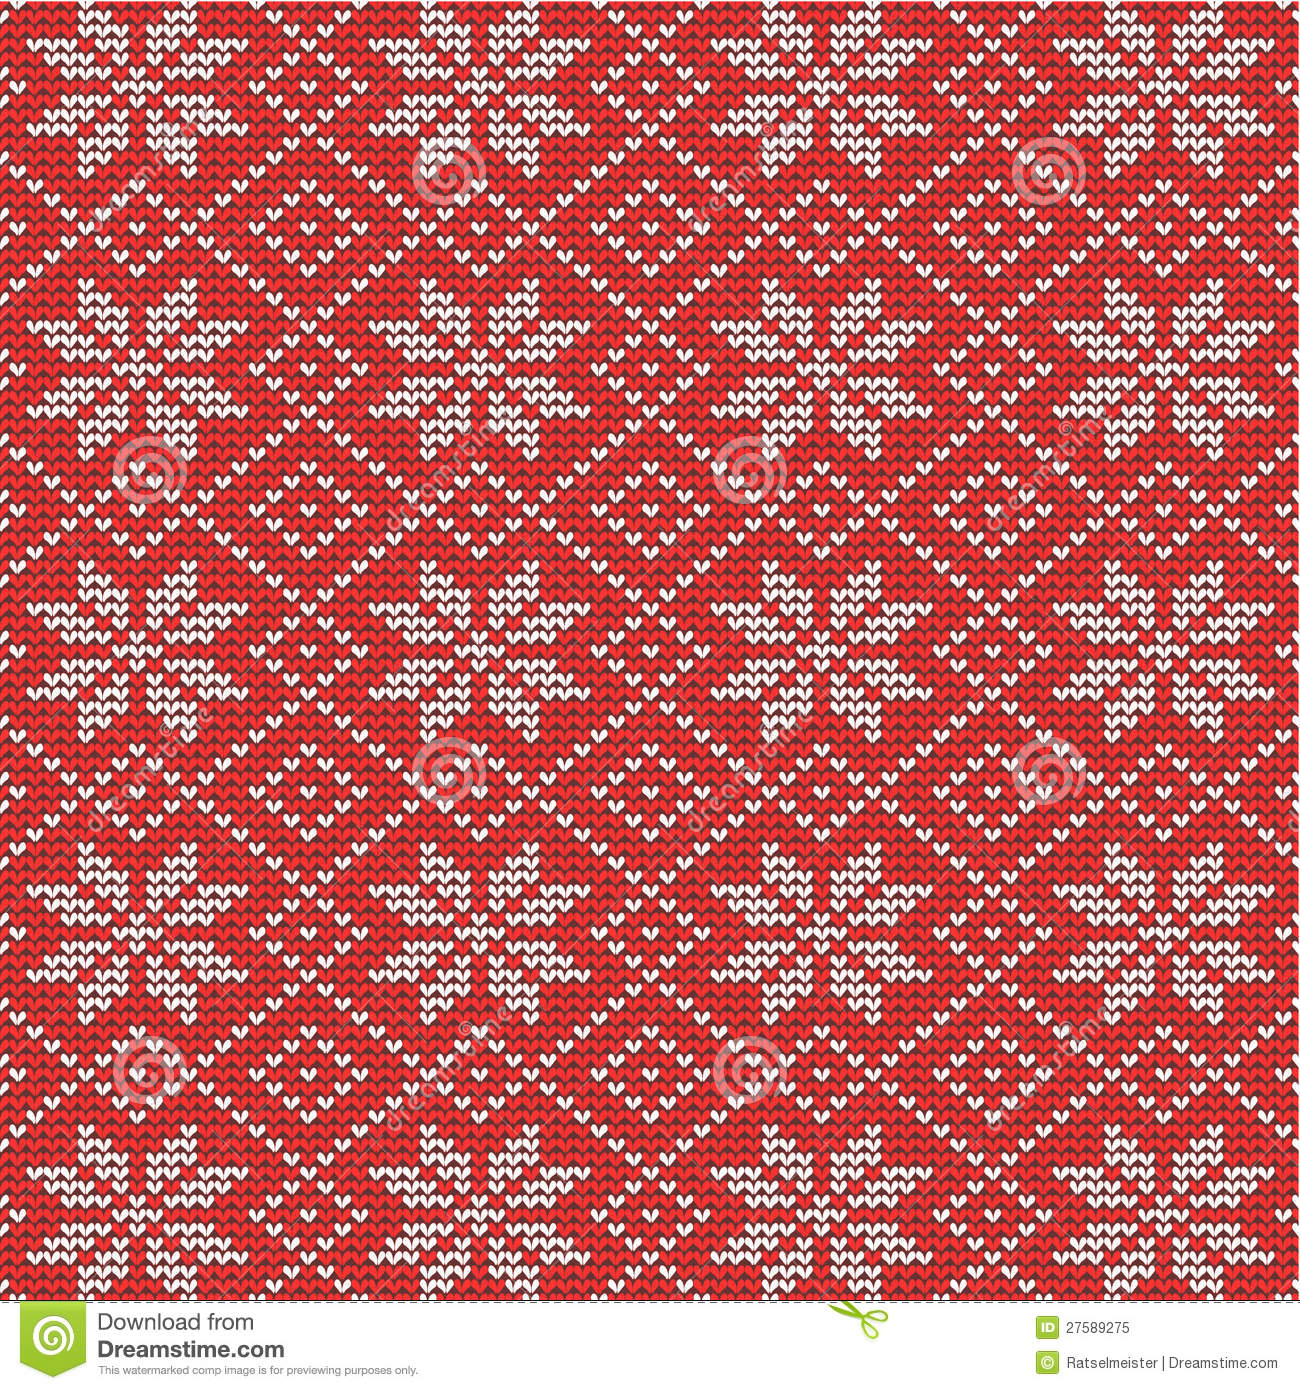 Christmas Knitting Background : Red and white knitted snowflakes background stock vector